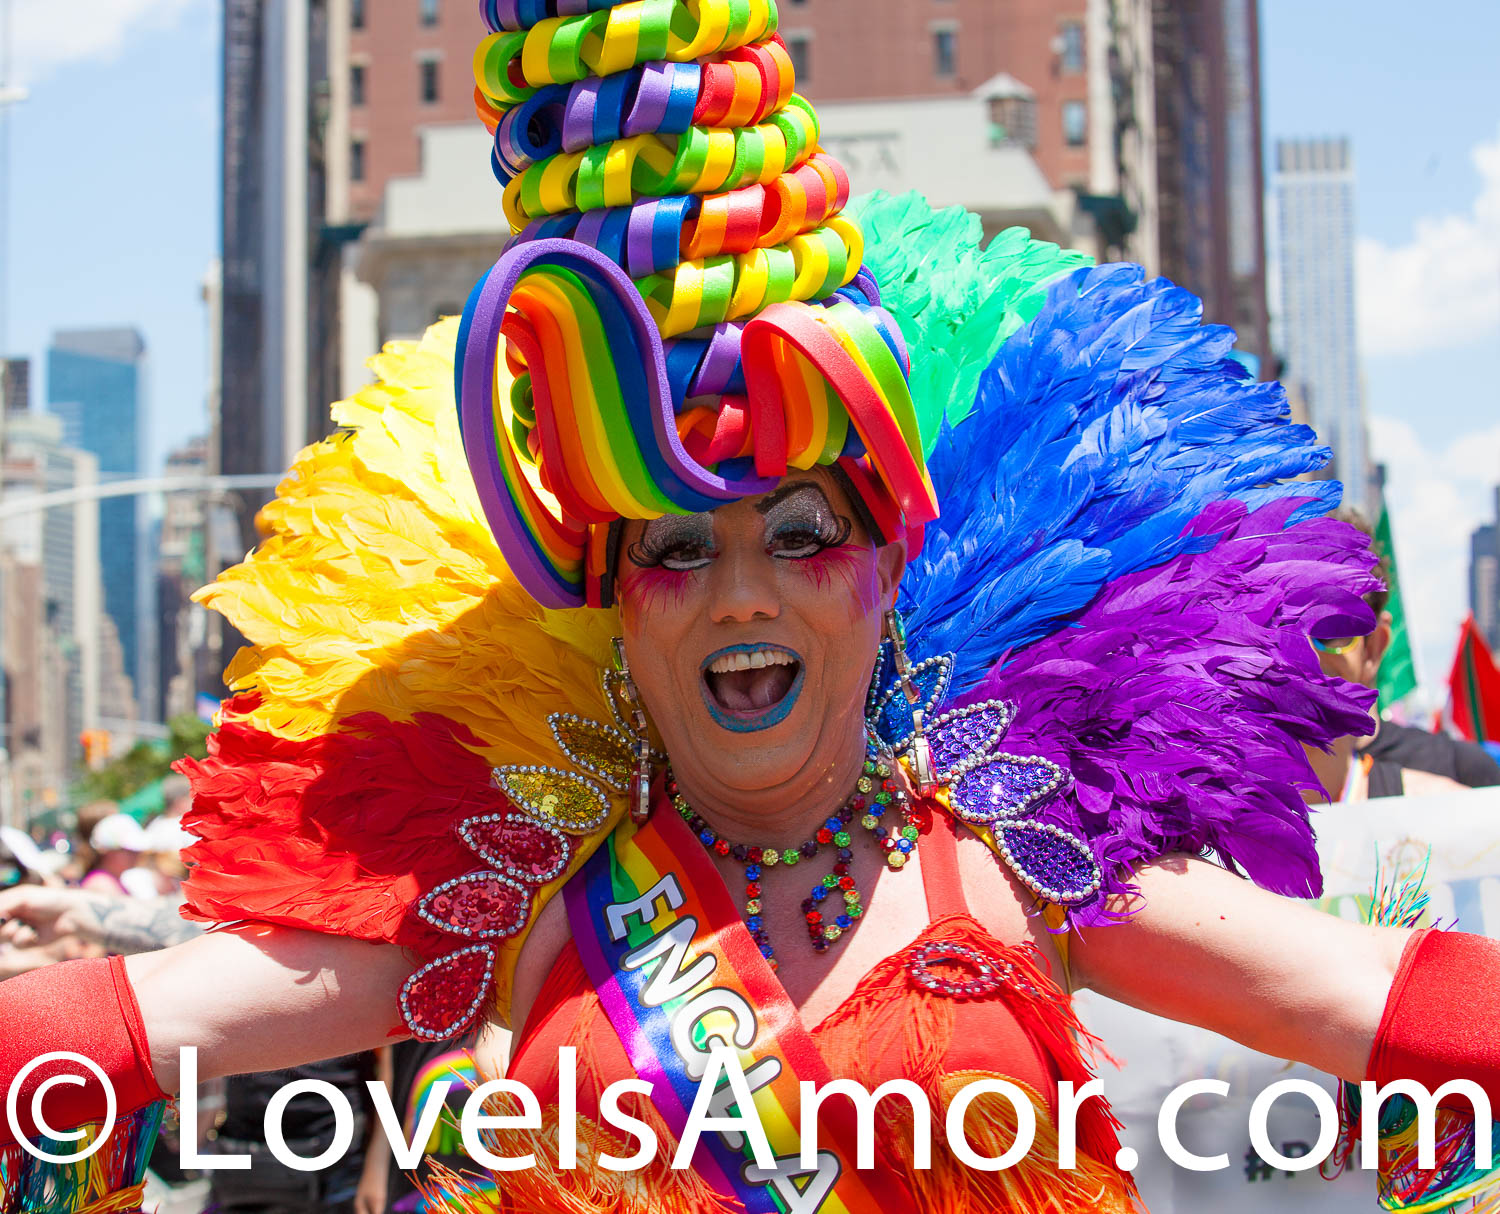 Sunday, June 30th, 2019. New York City - Woman wearing a beautiful costume at the NYC Pride March. The 50th anniversary of the Stonewall Rebellion was on Friday, June 28th, 2019. People from around the world came to New York City to celebrate. Credit: Photo by LoveIsAmor.com